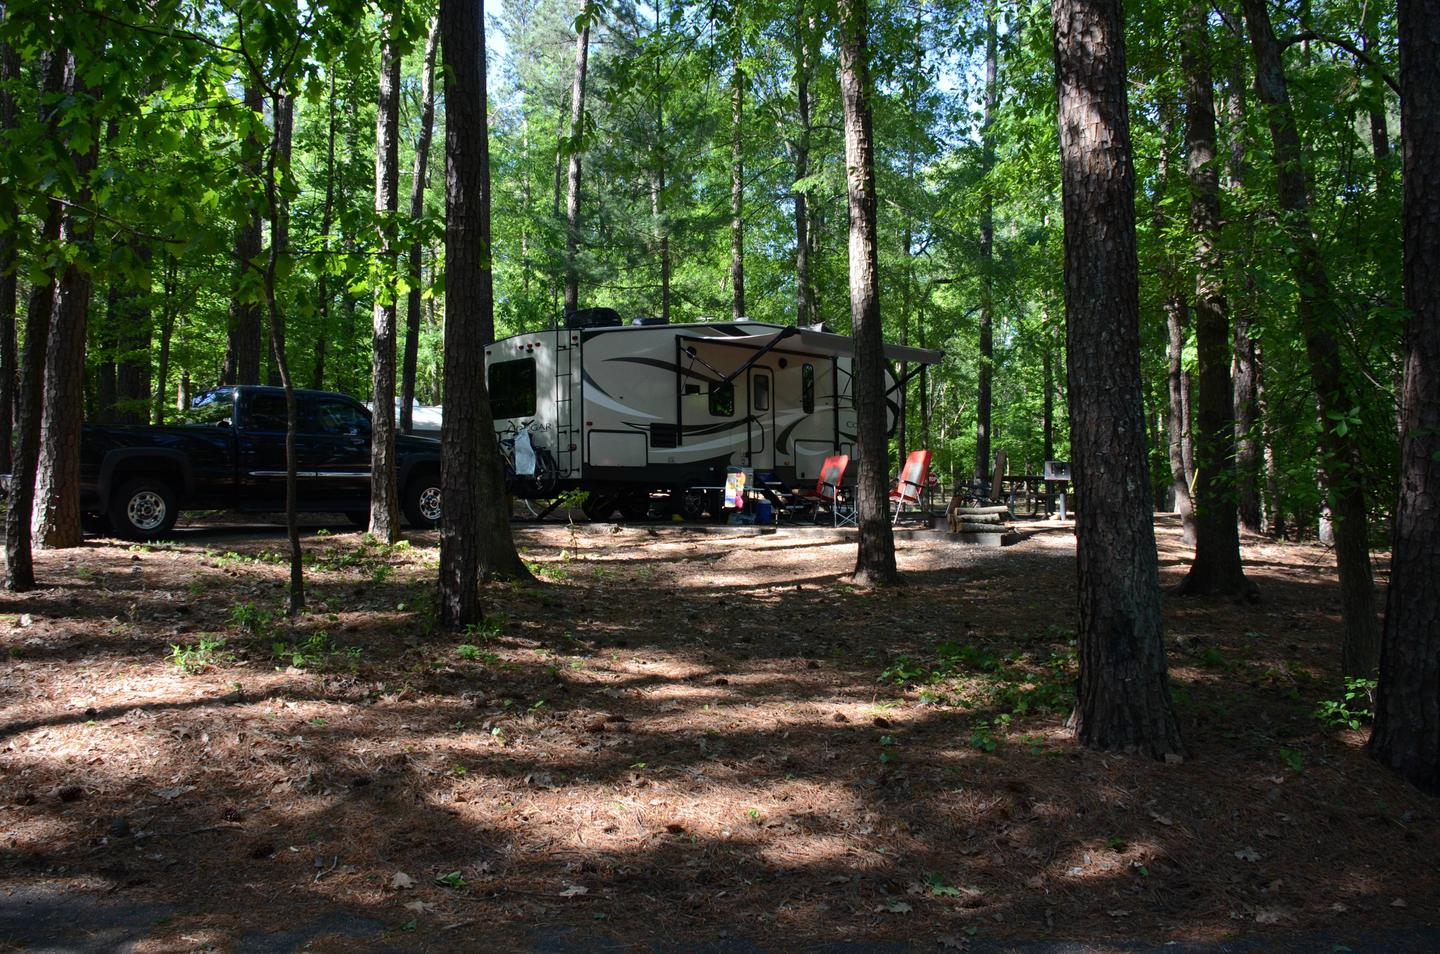 Awning clearanceMcKinney Campground, campsite 19